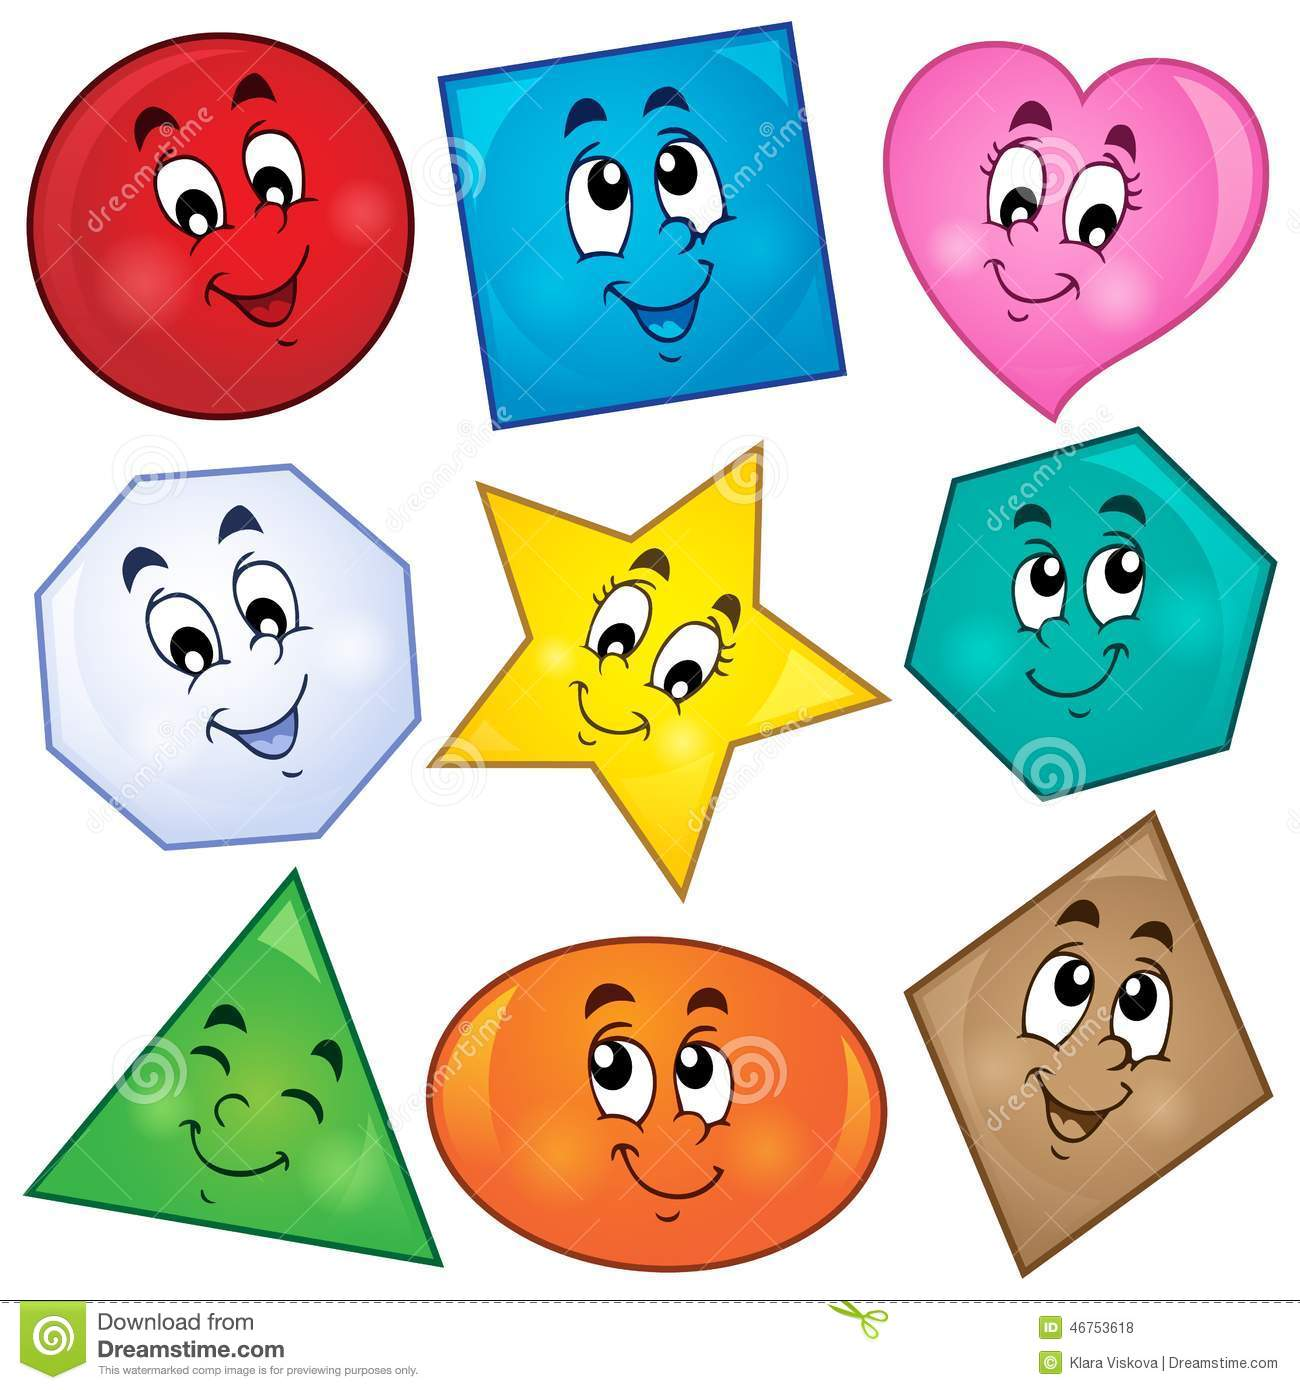 Shapes Clipart - ClipartFest-Shapes clipart - ClipartFest-14